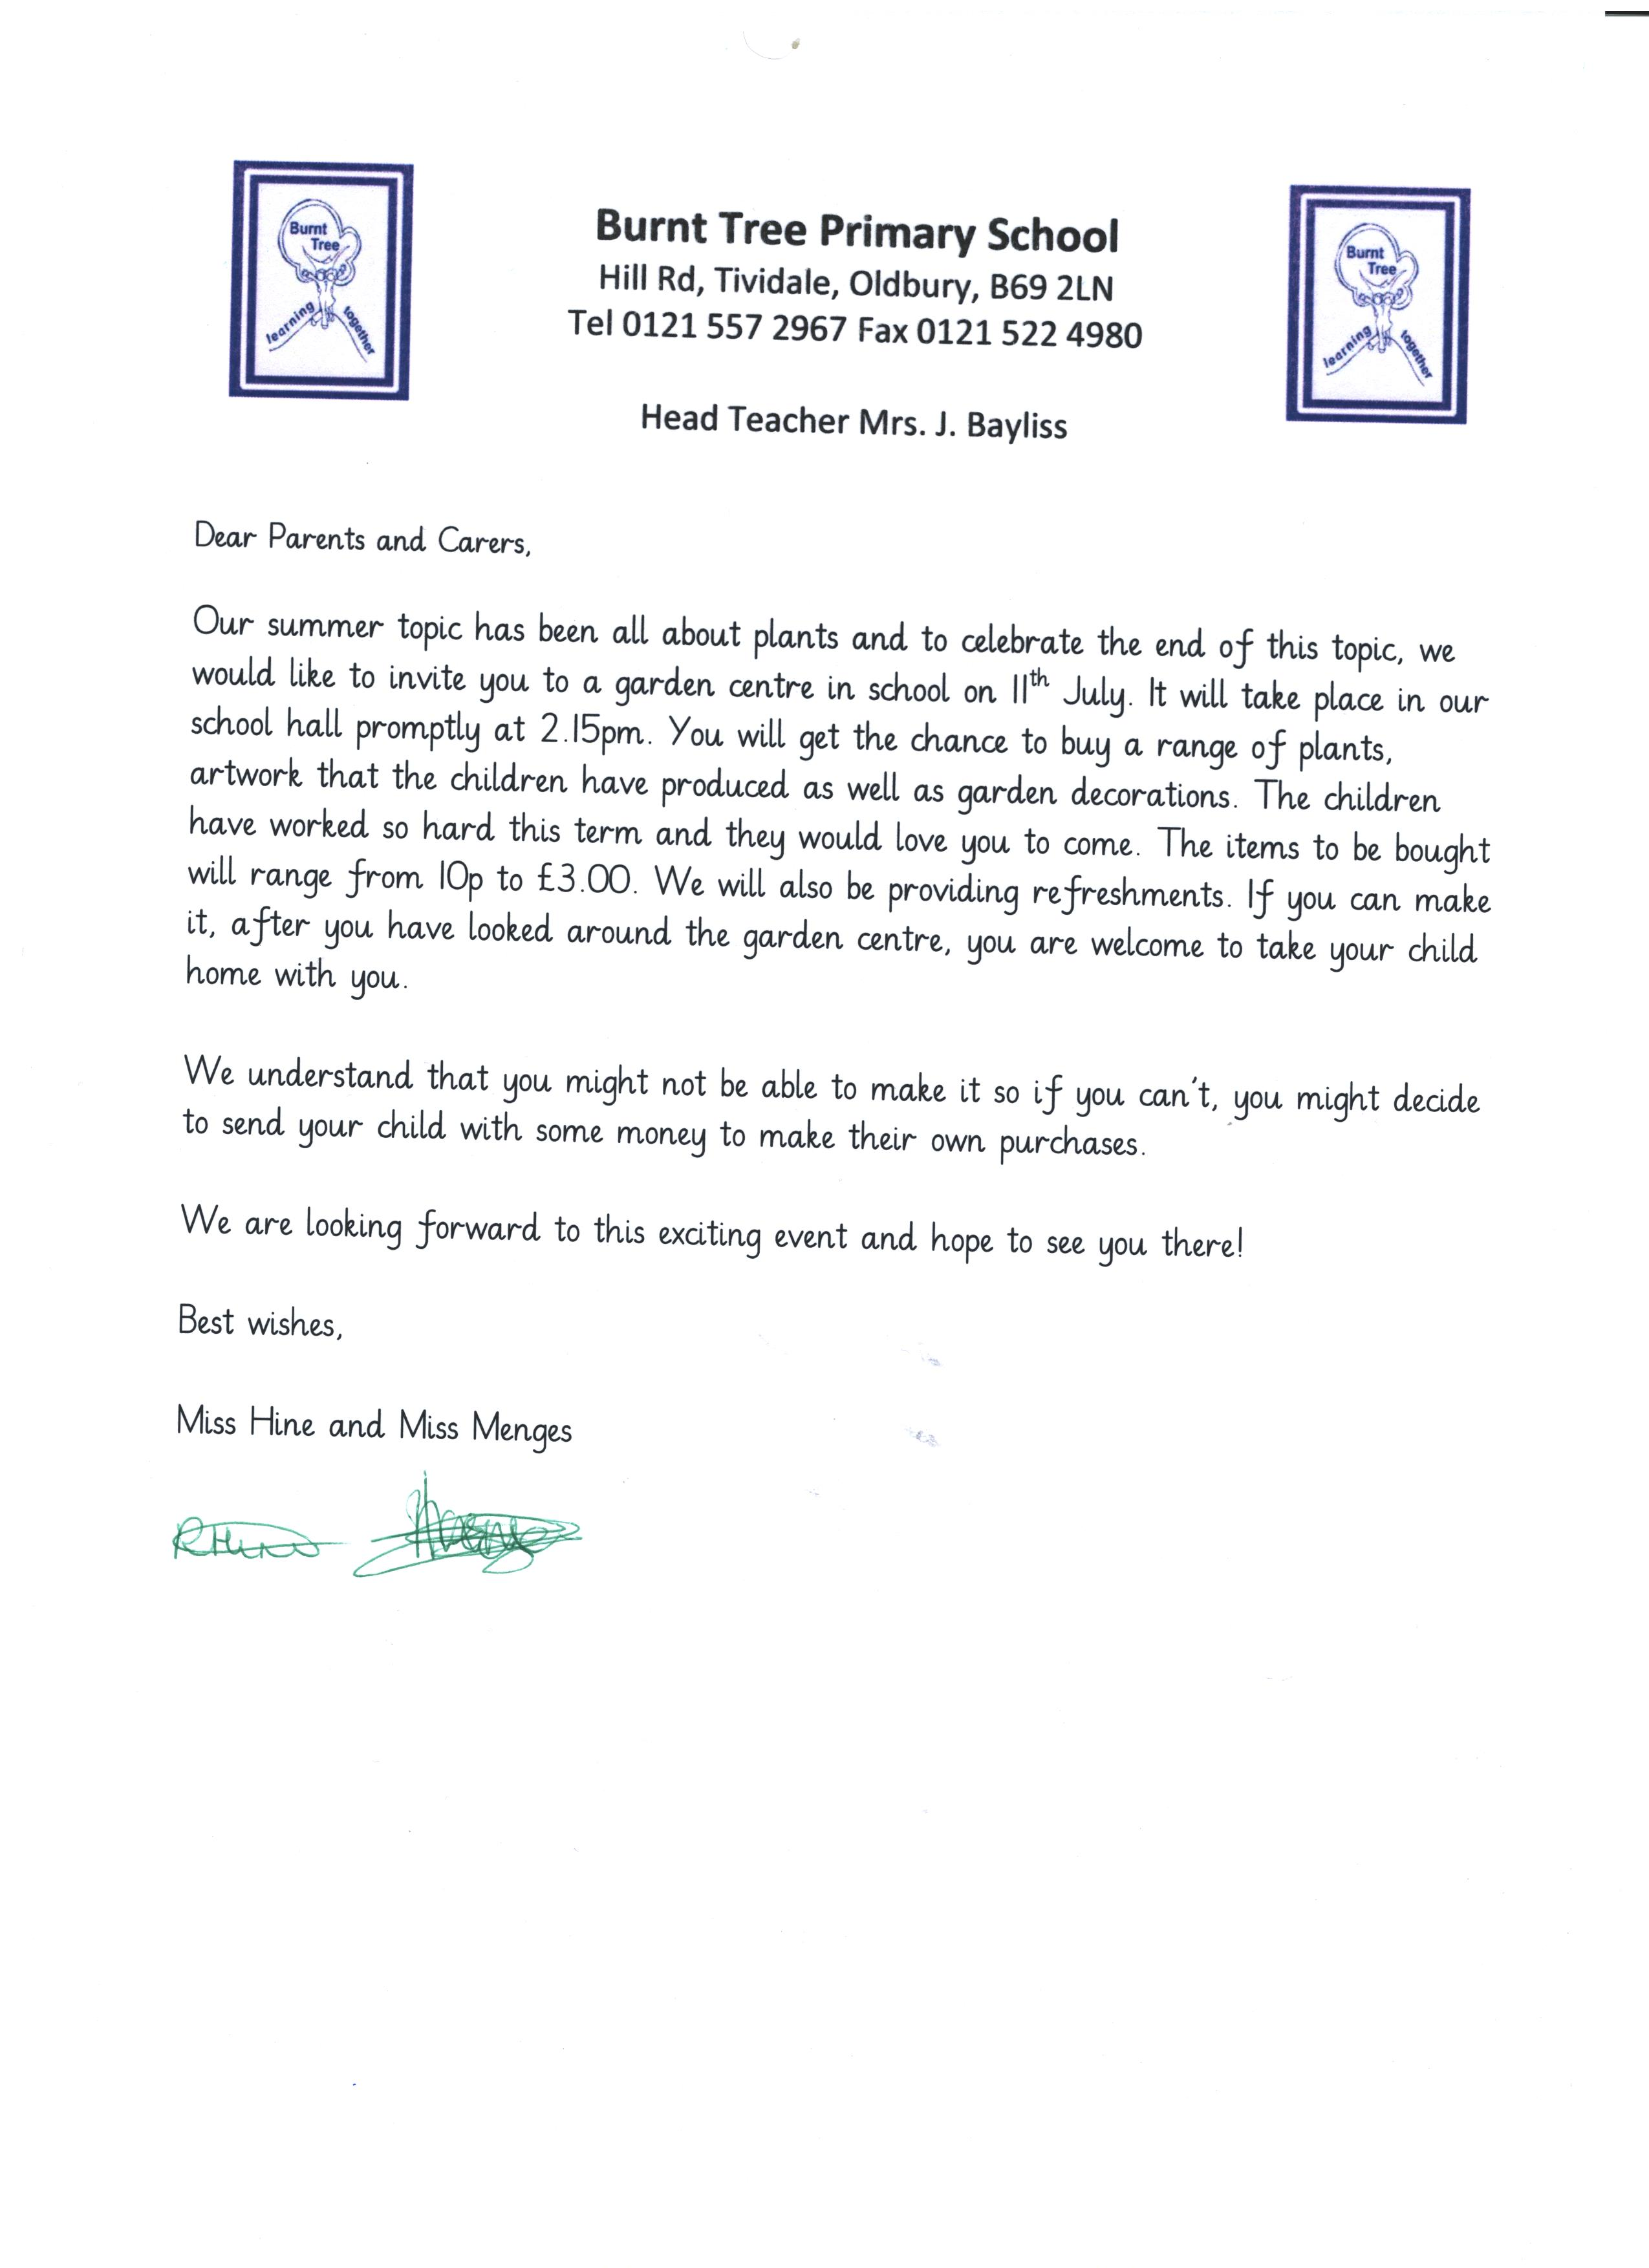 Year 1 Plant Sale Letter Burnt Tree Primary School